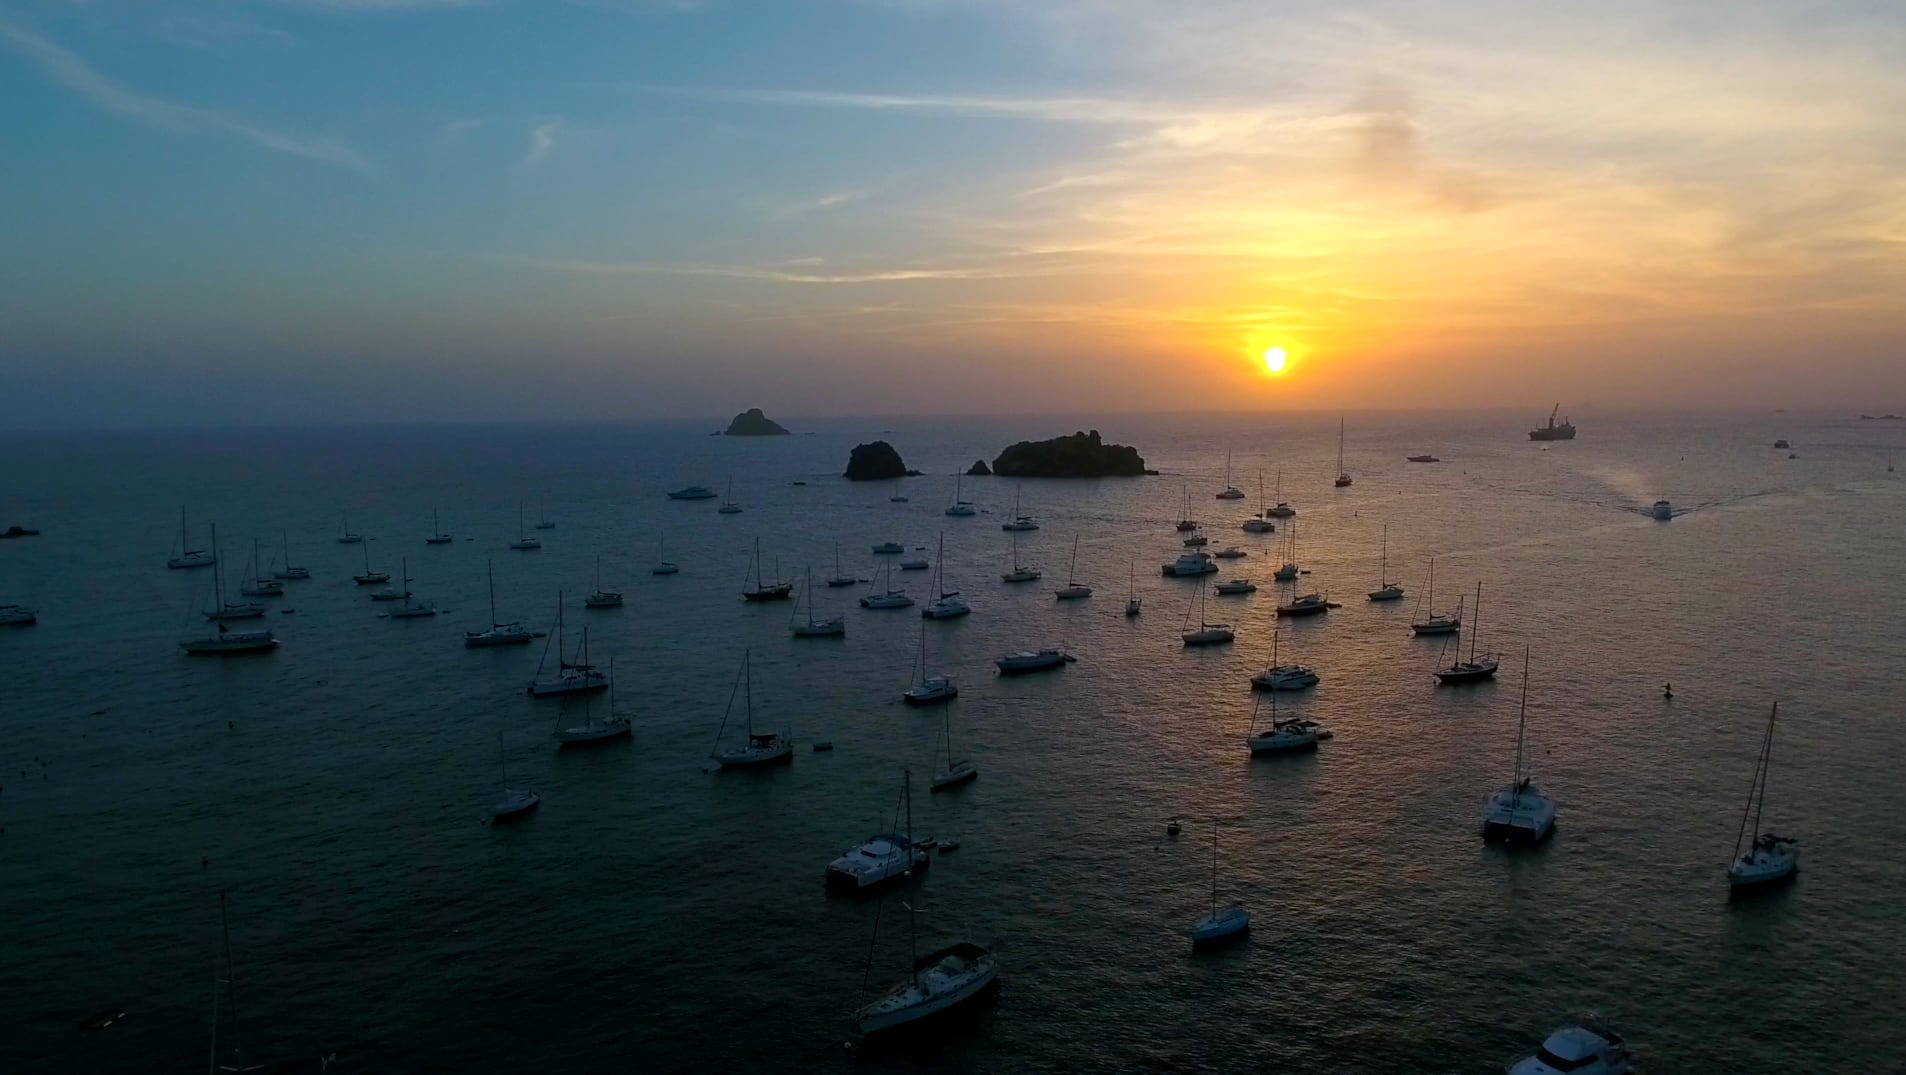 Sunset over St. Barths